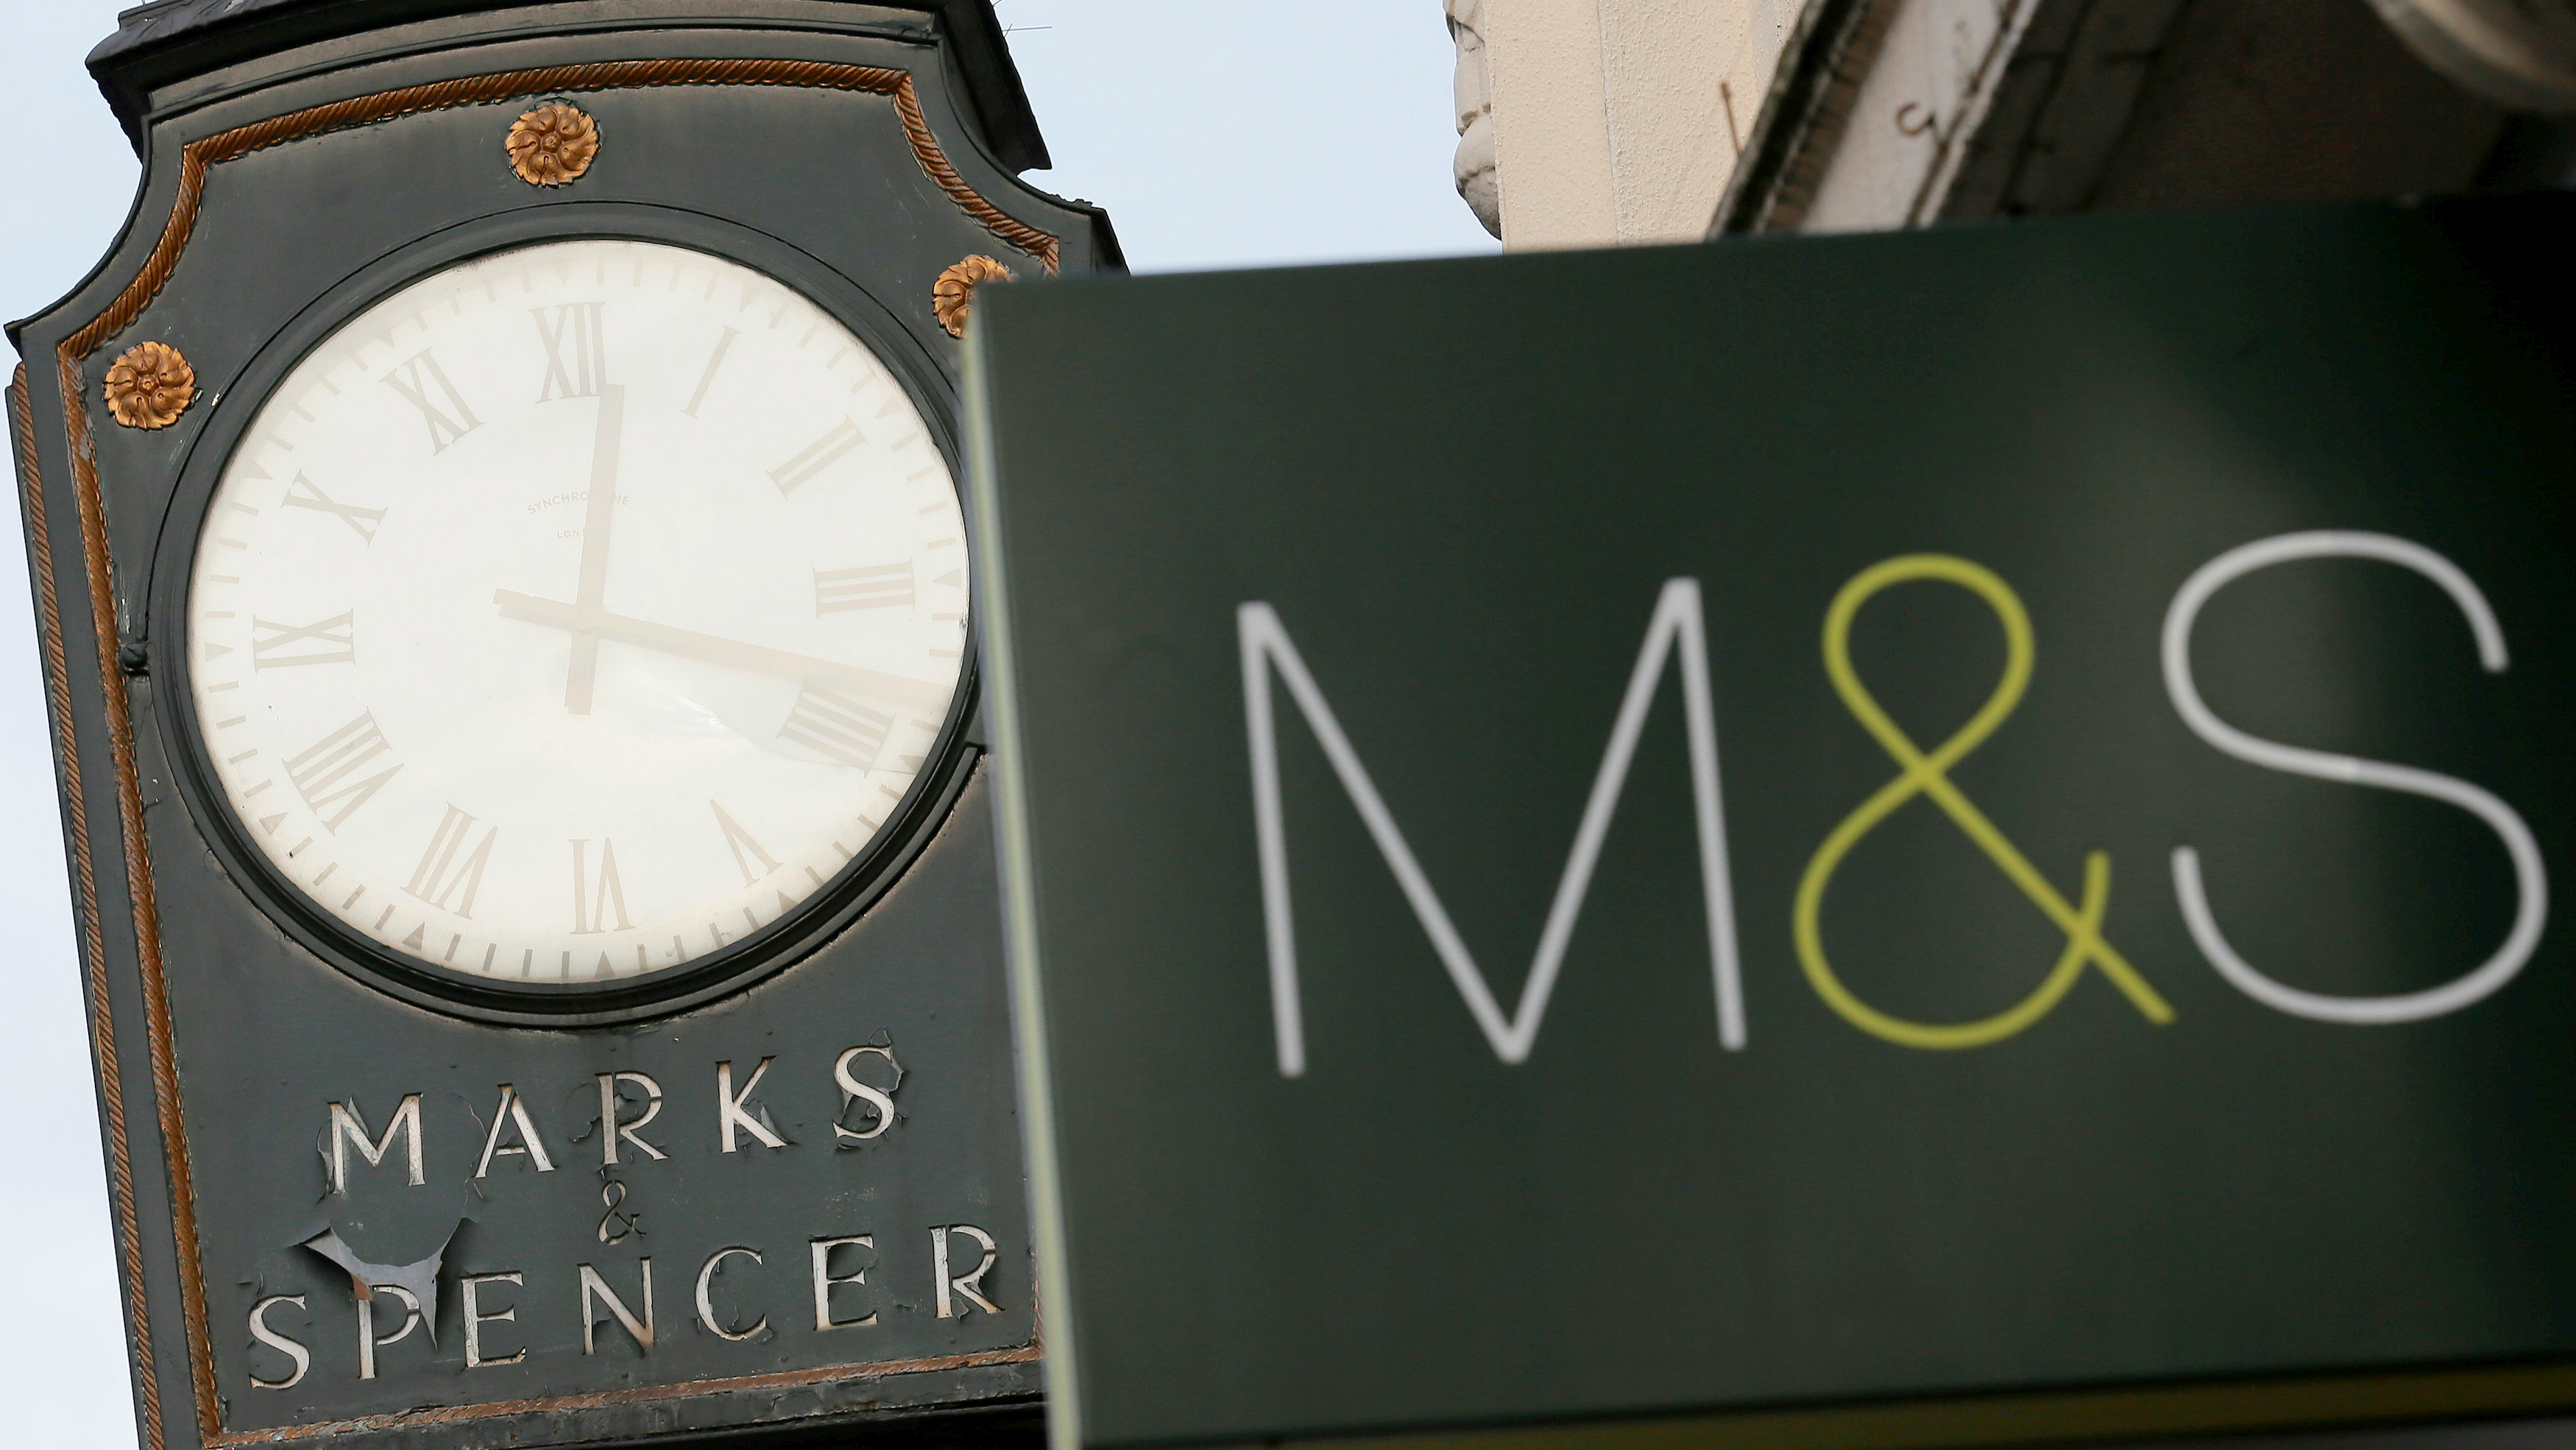 M&S says it must accelerate change or fade away